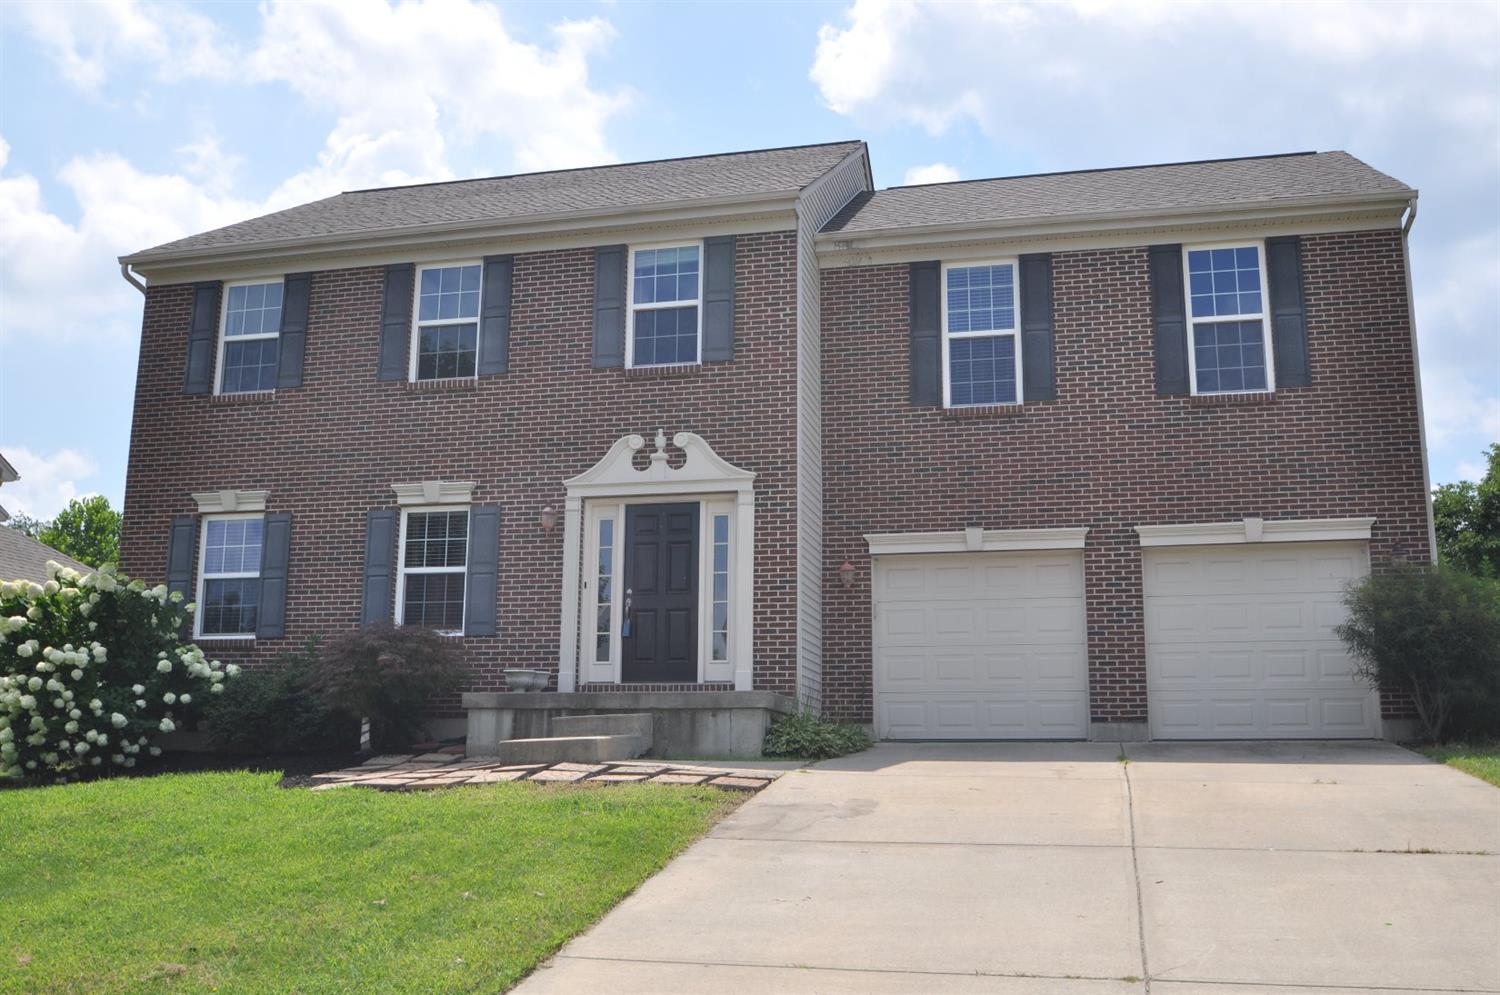 Photo 1 for 2199 Bluegrama Dr Burlington, KY 41005